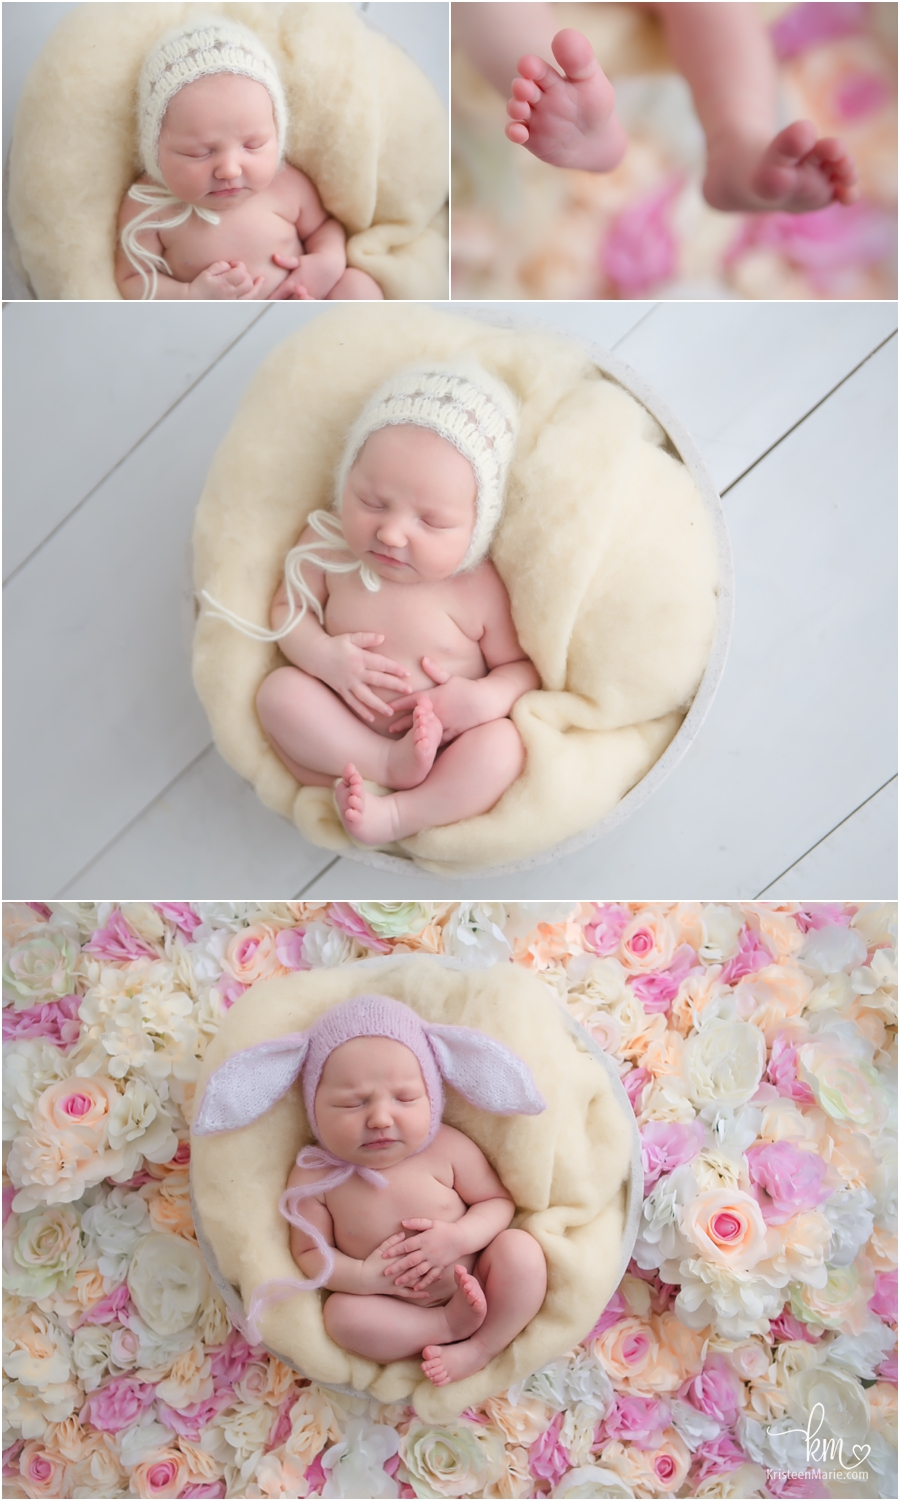 Easter newborn pictures - bunny hat on newborn baby with lots of Spring flowers